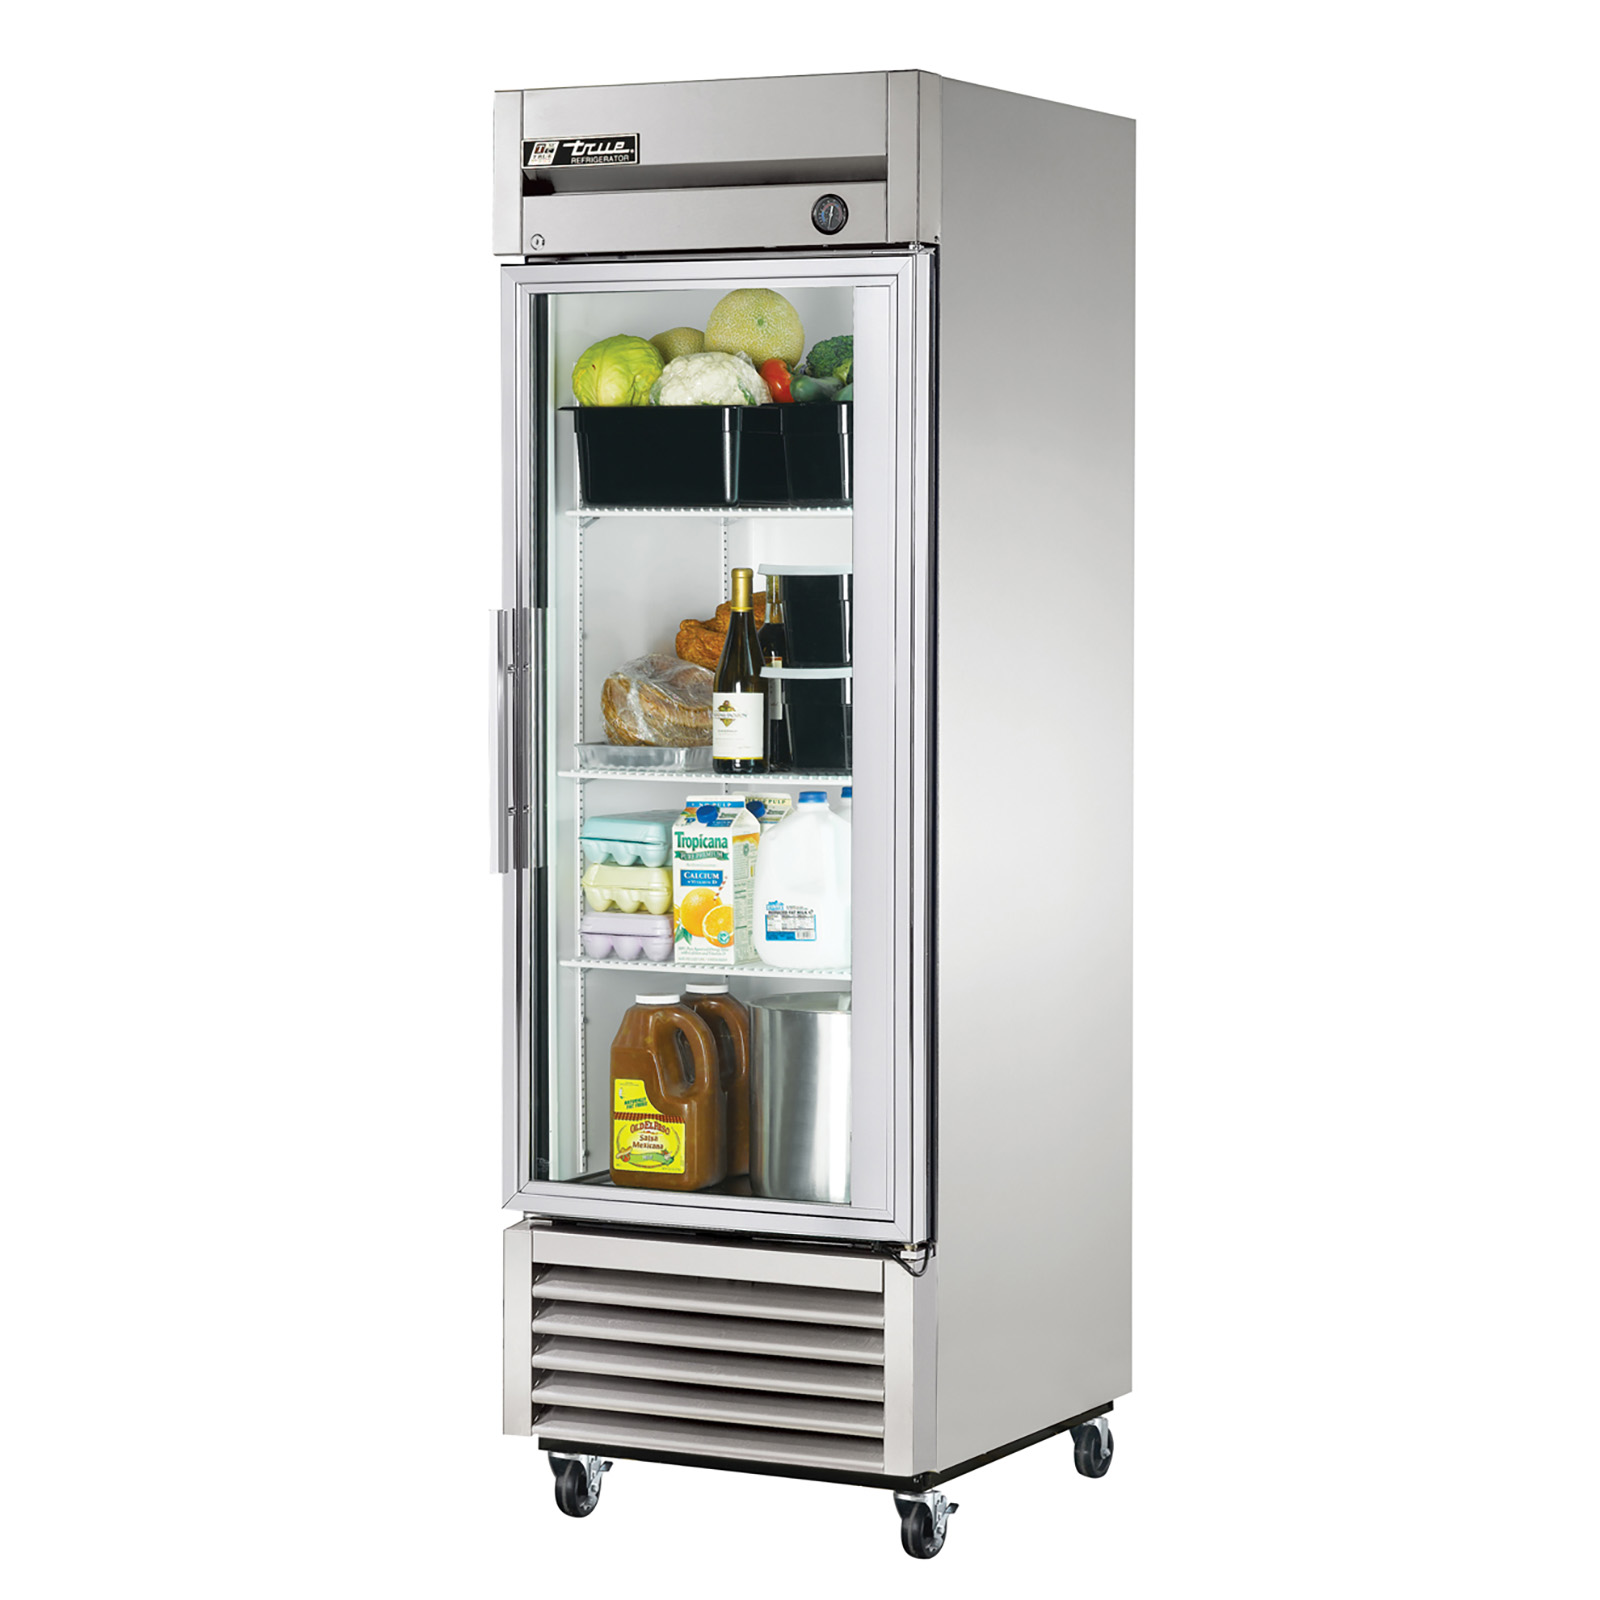 T-23G-LD True - Refrigerator Reach-in